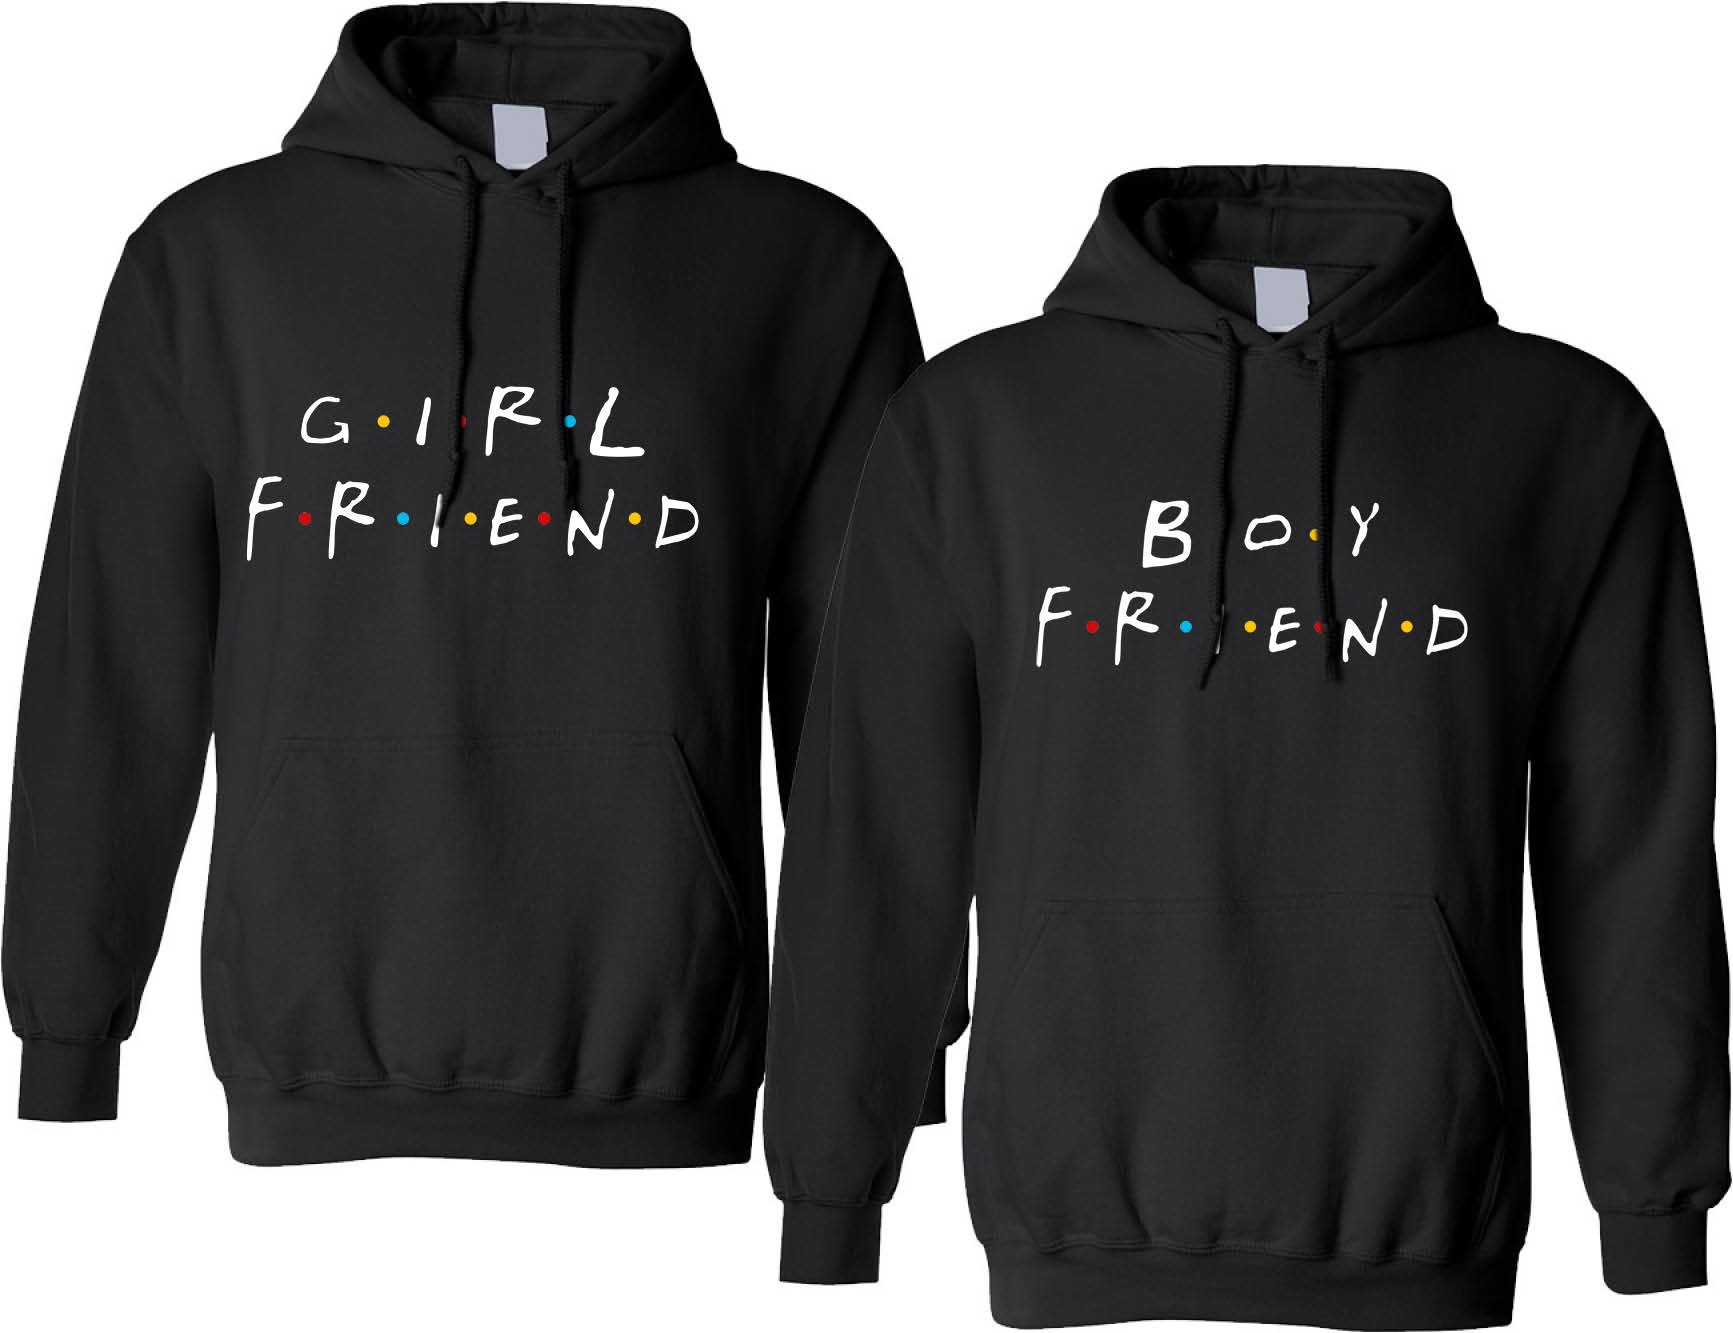 Allntrends Couple Hoodie Girlfriend Boyfriend Love Friends Gift Matching Outfits (Womens S Mens XL, Black)